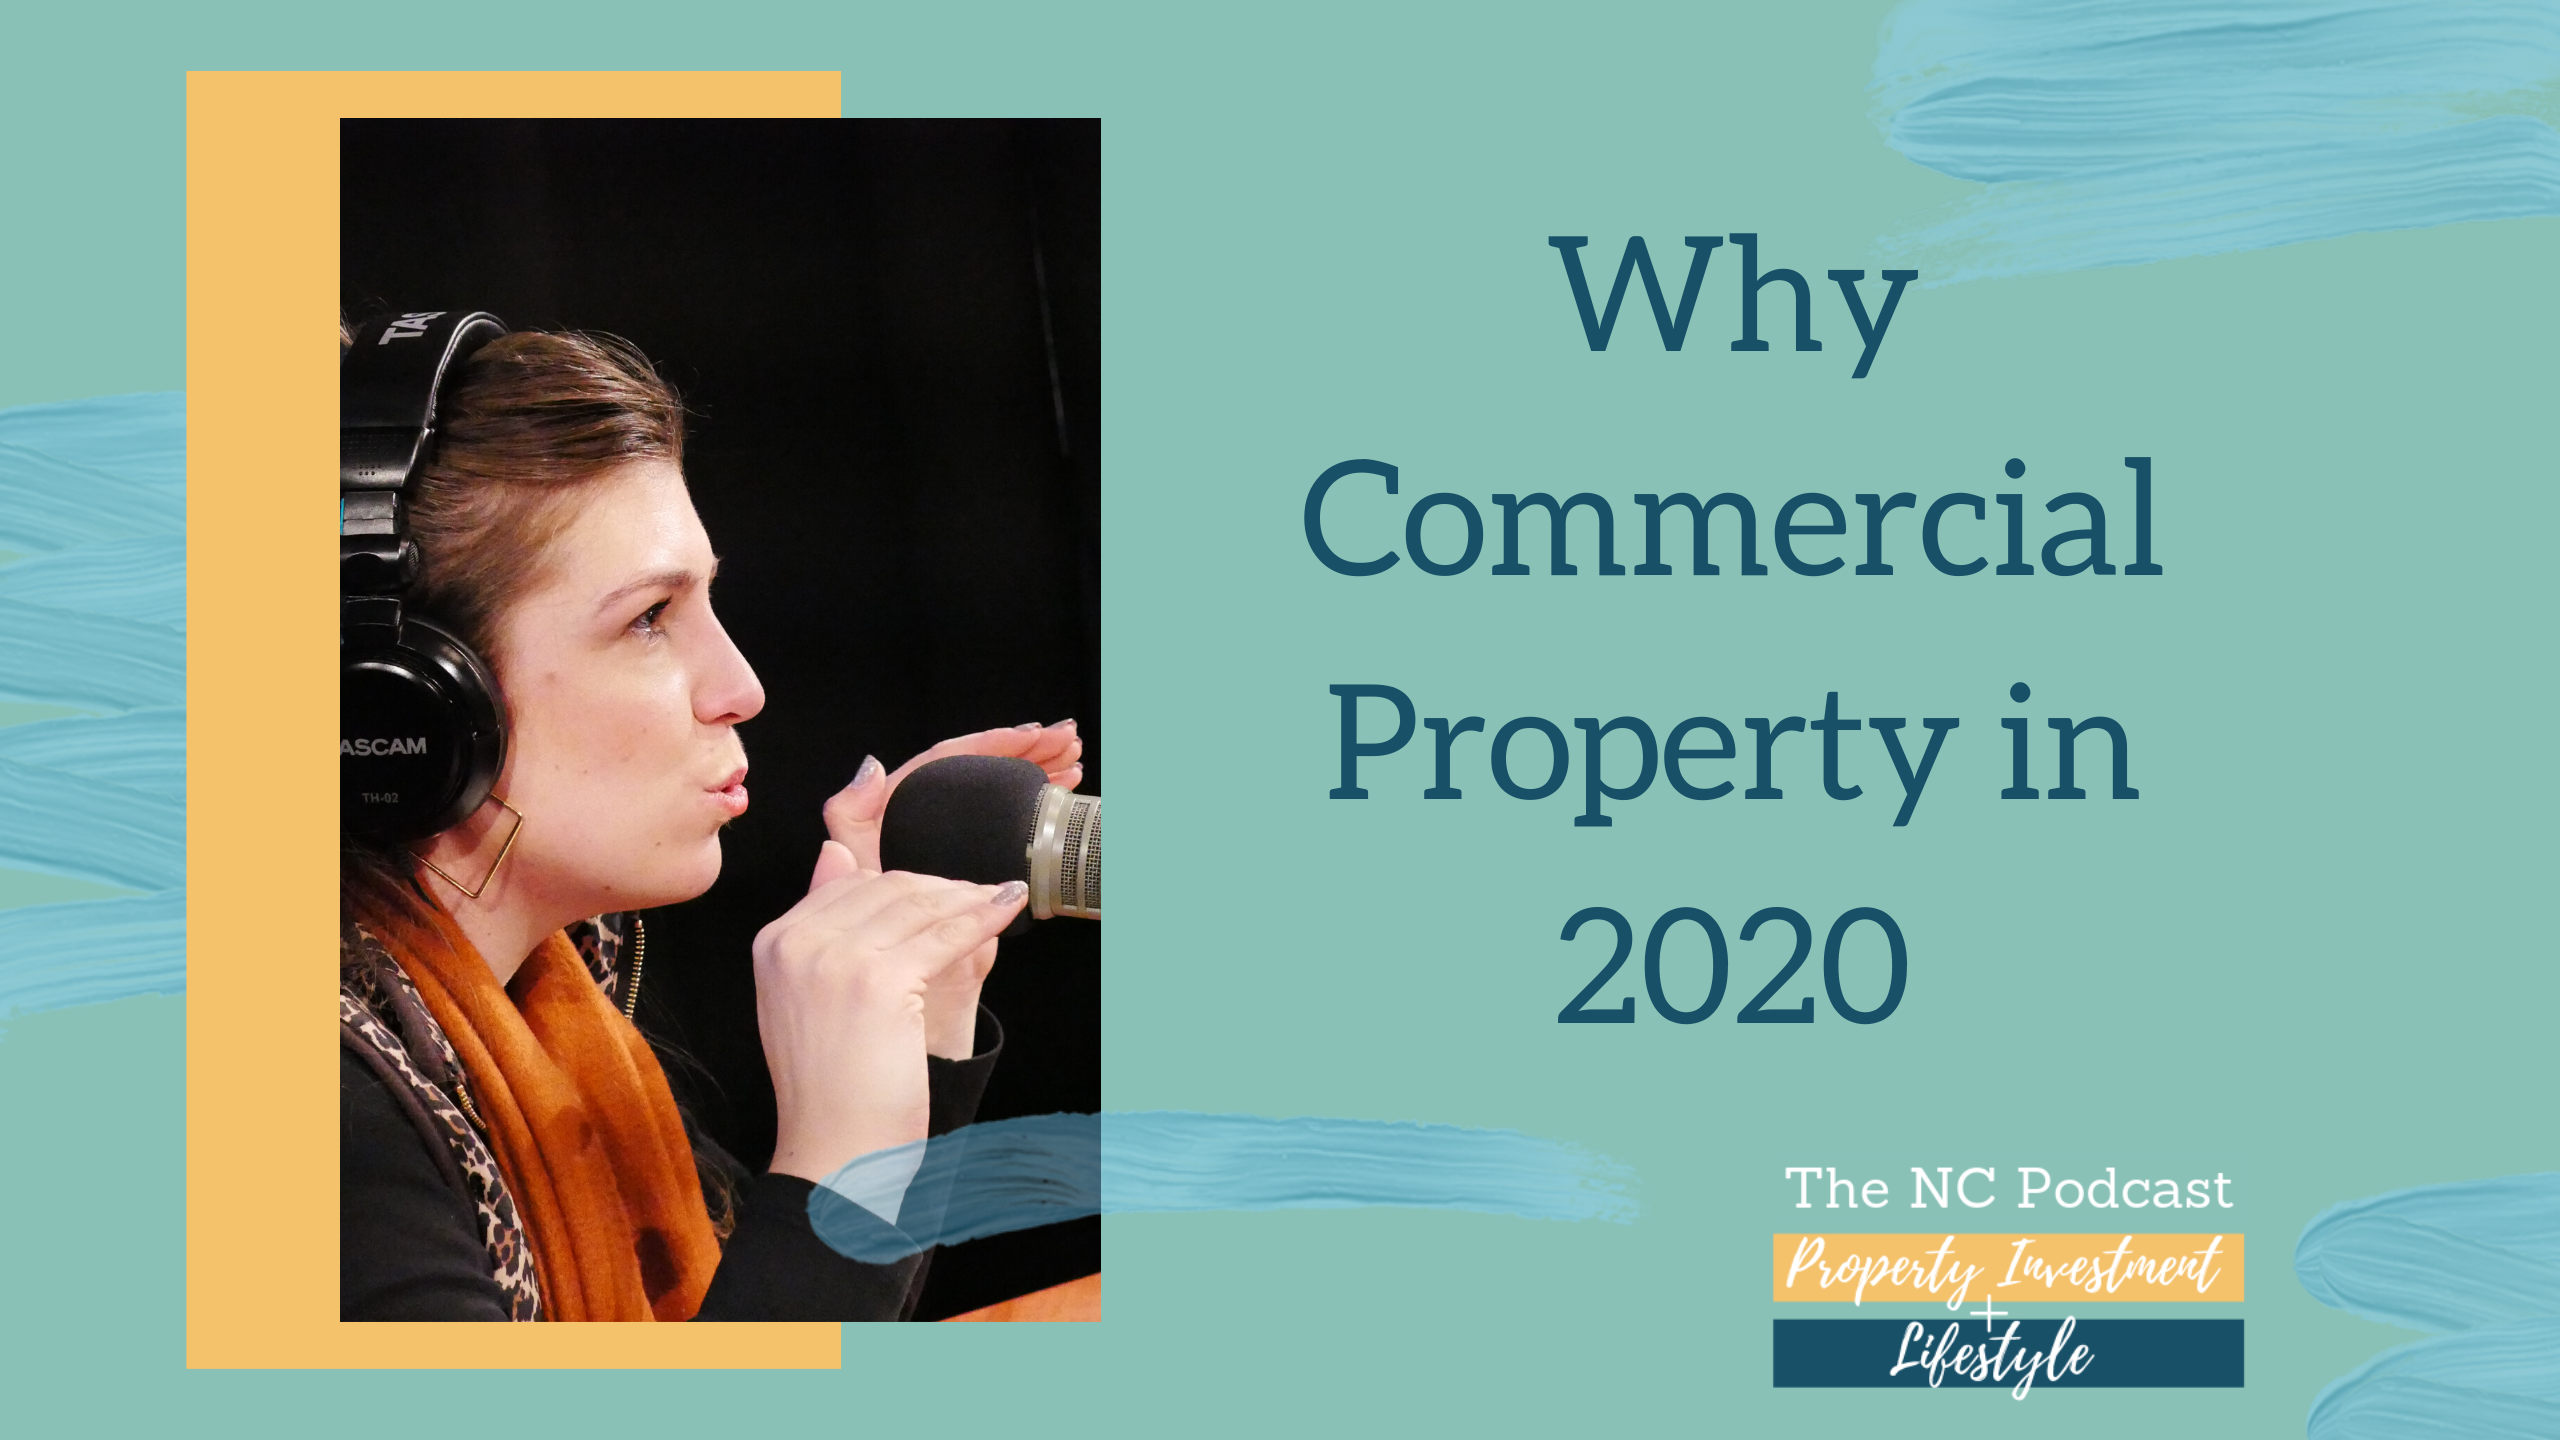 Why Commercial property in 2020